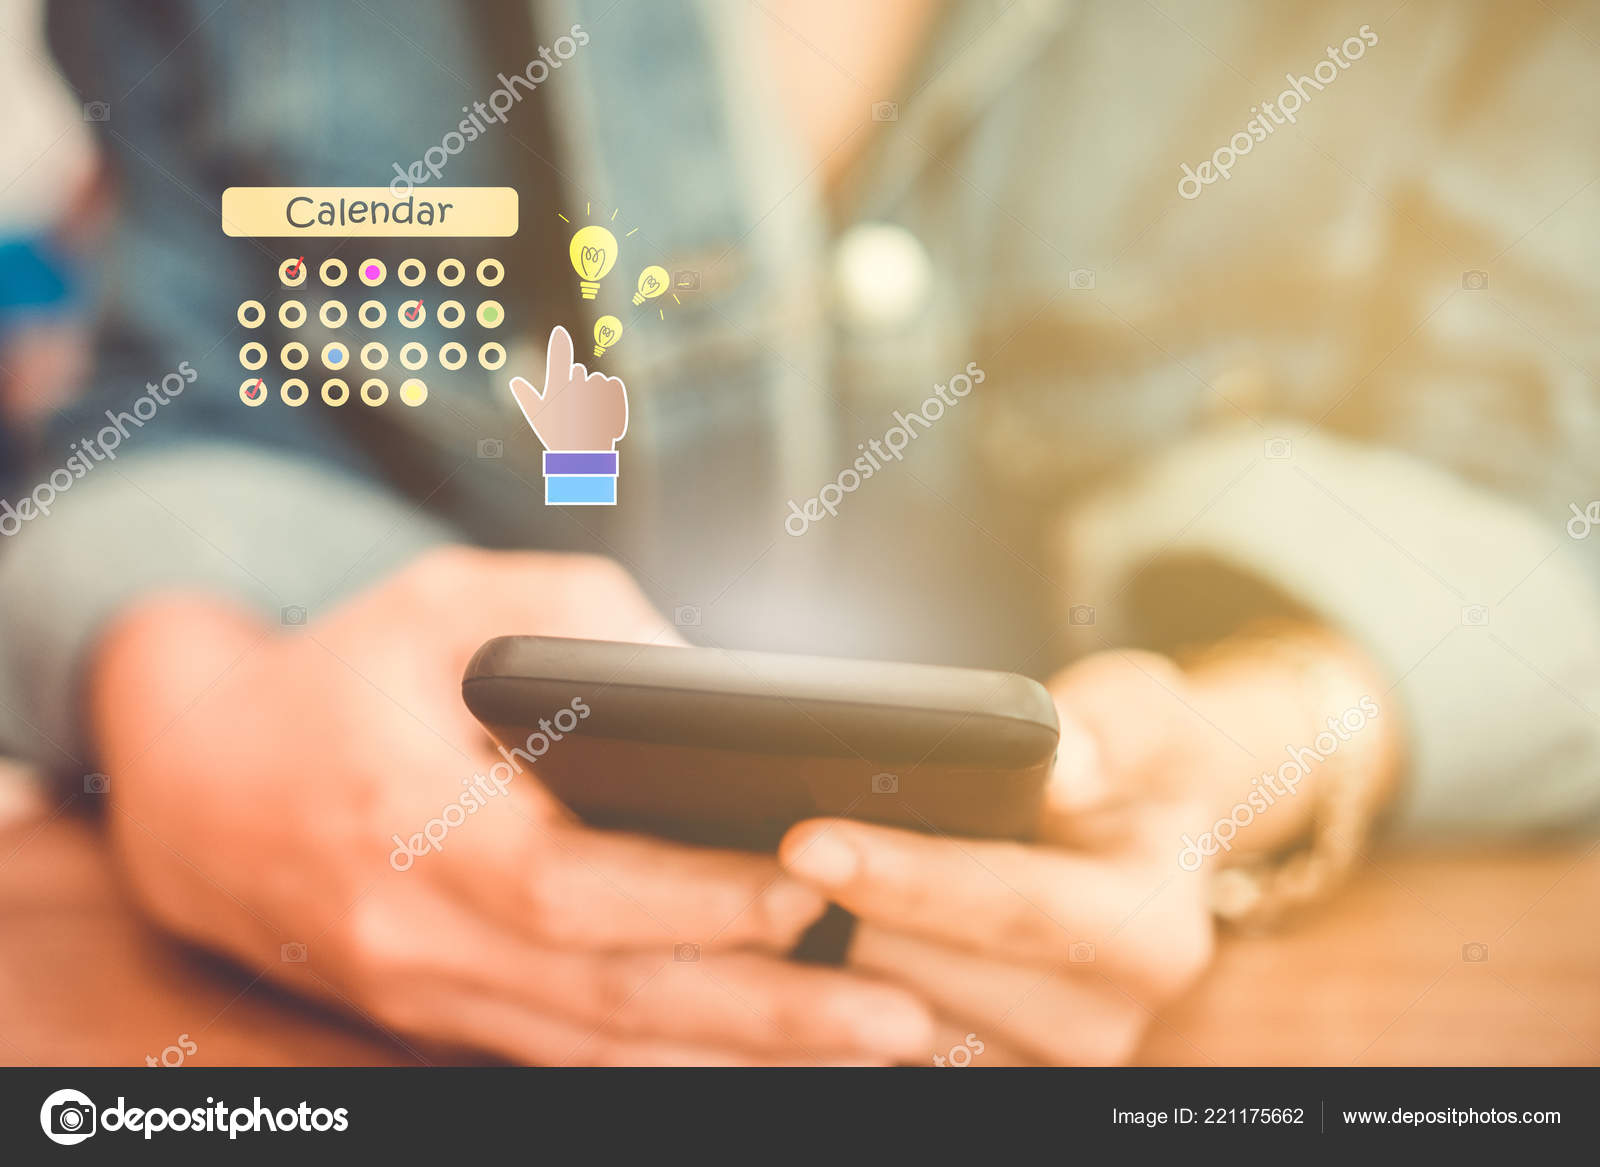 Woman Hand Using Smartphone Planning Digital Calendar Application